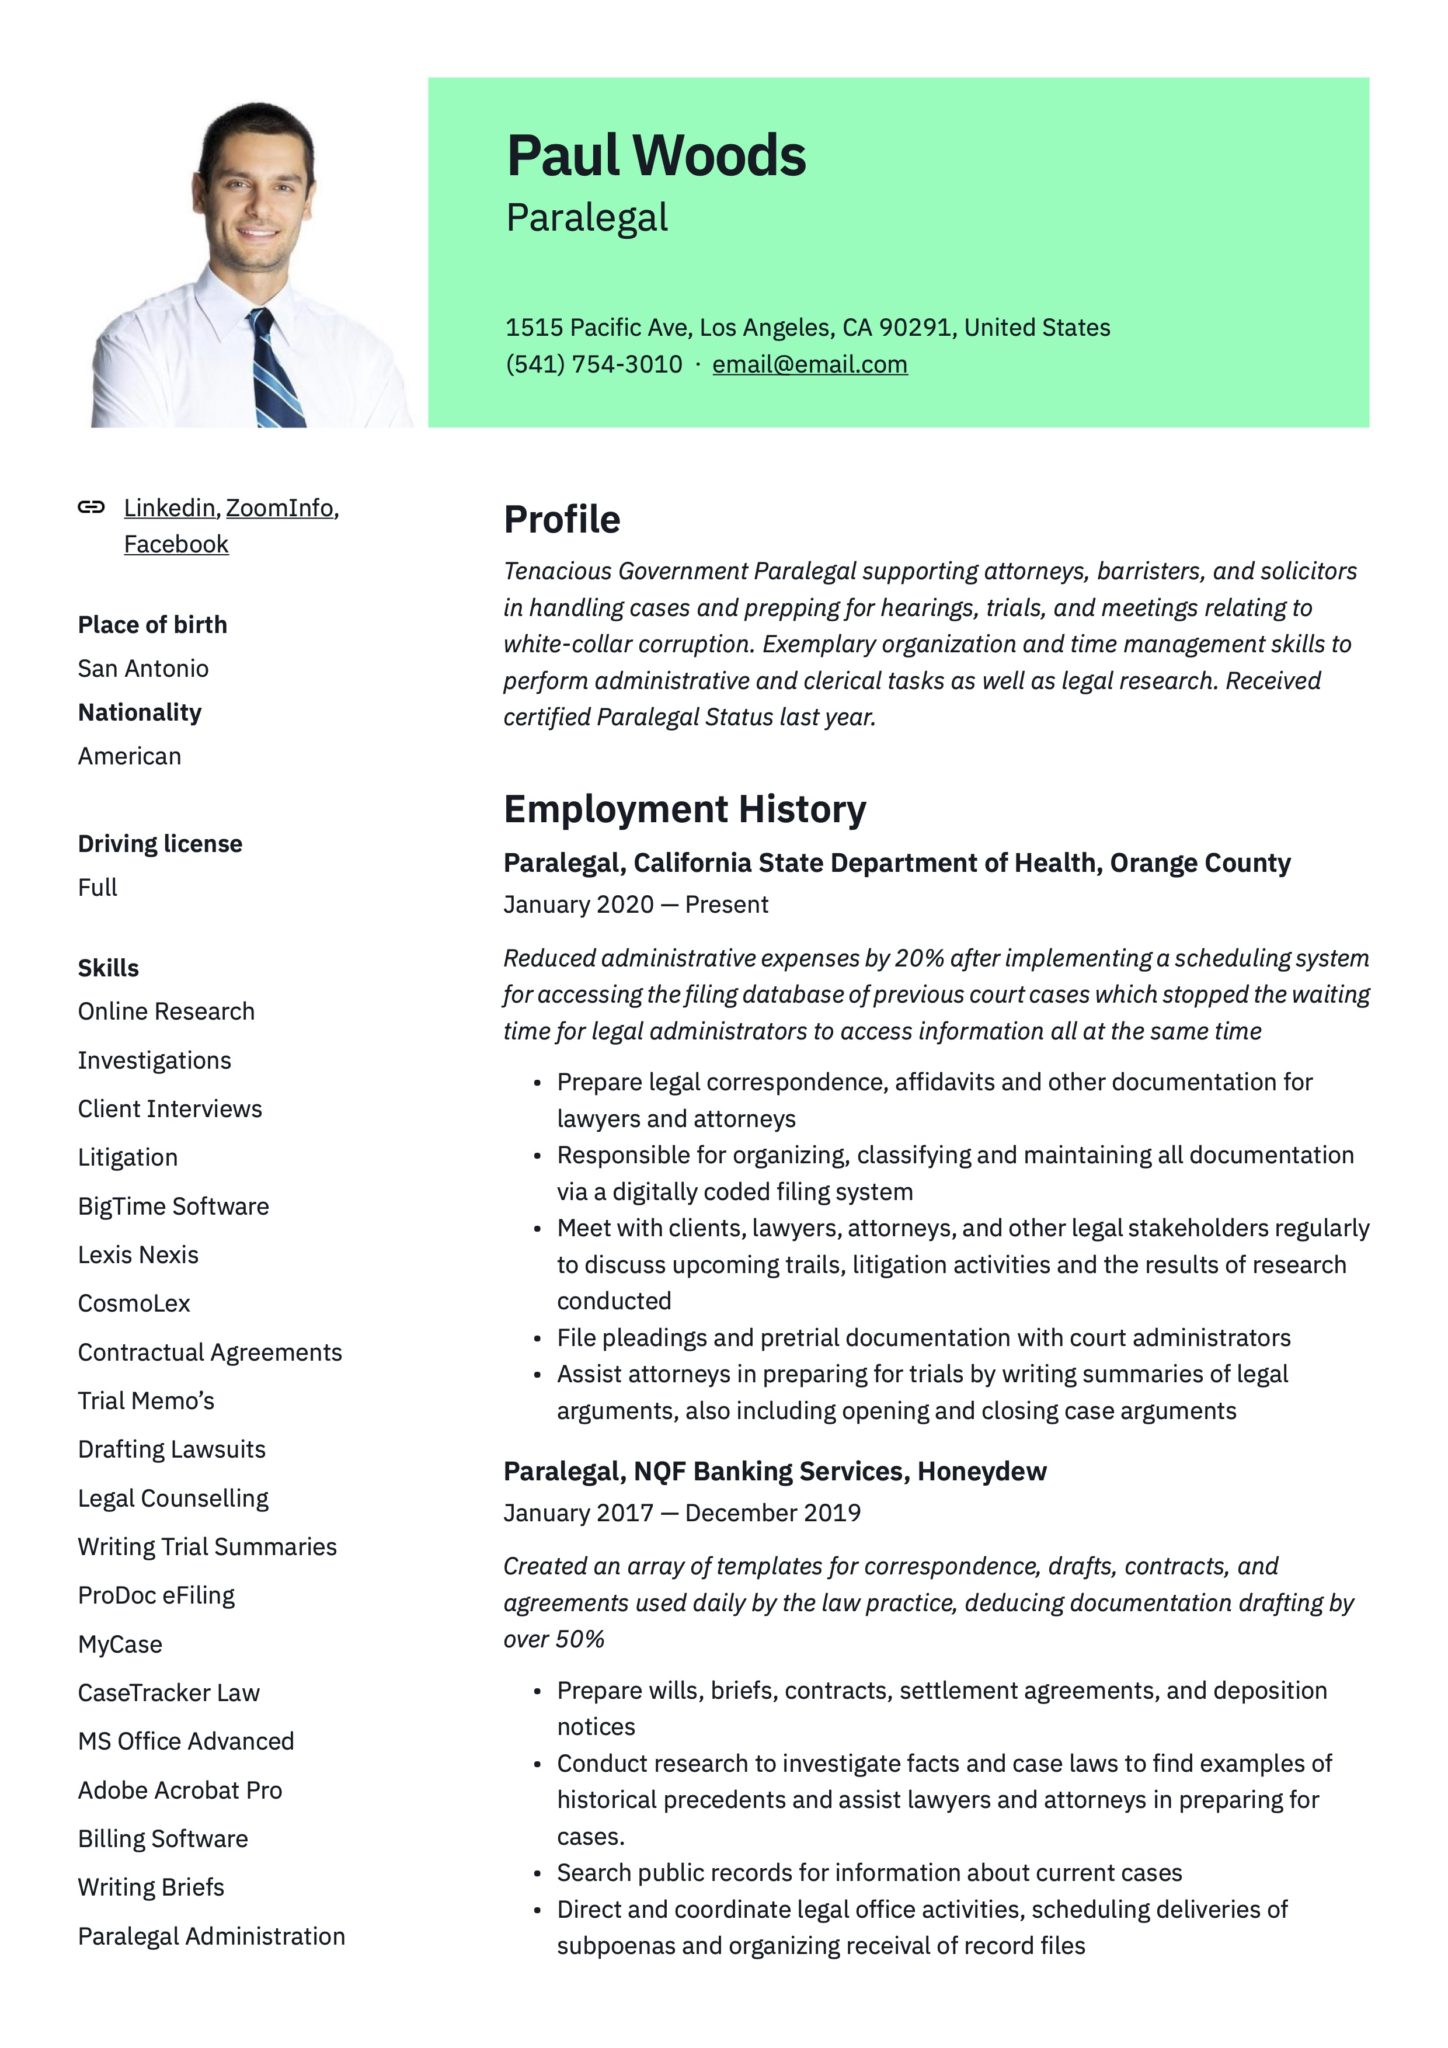 paralegal resume examples guide pdf free scaled writing for high school students Resume Paralegal Resume Examples 2020